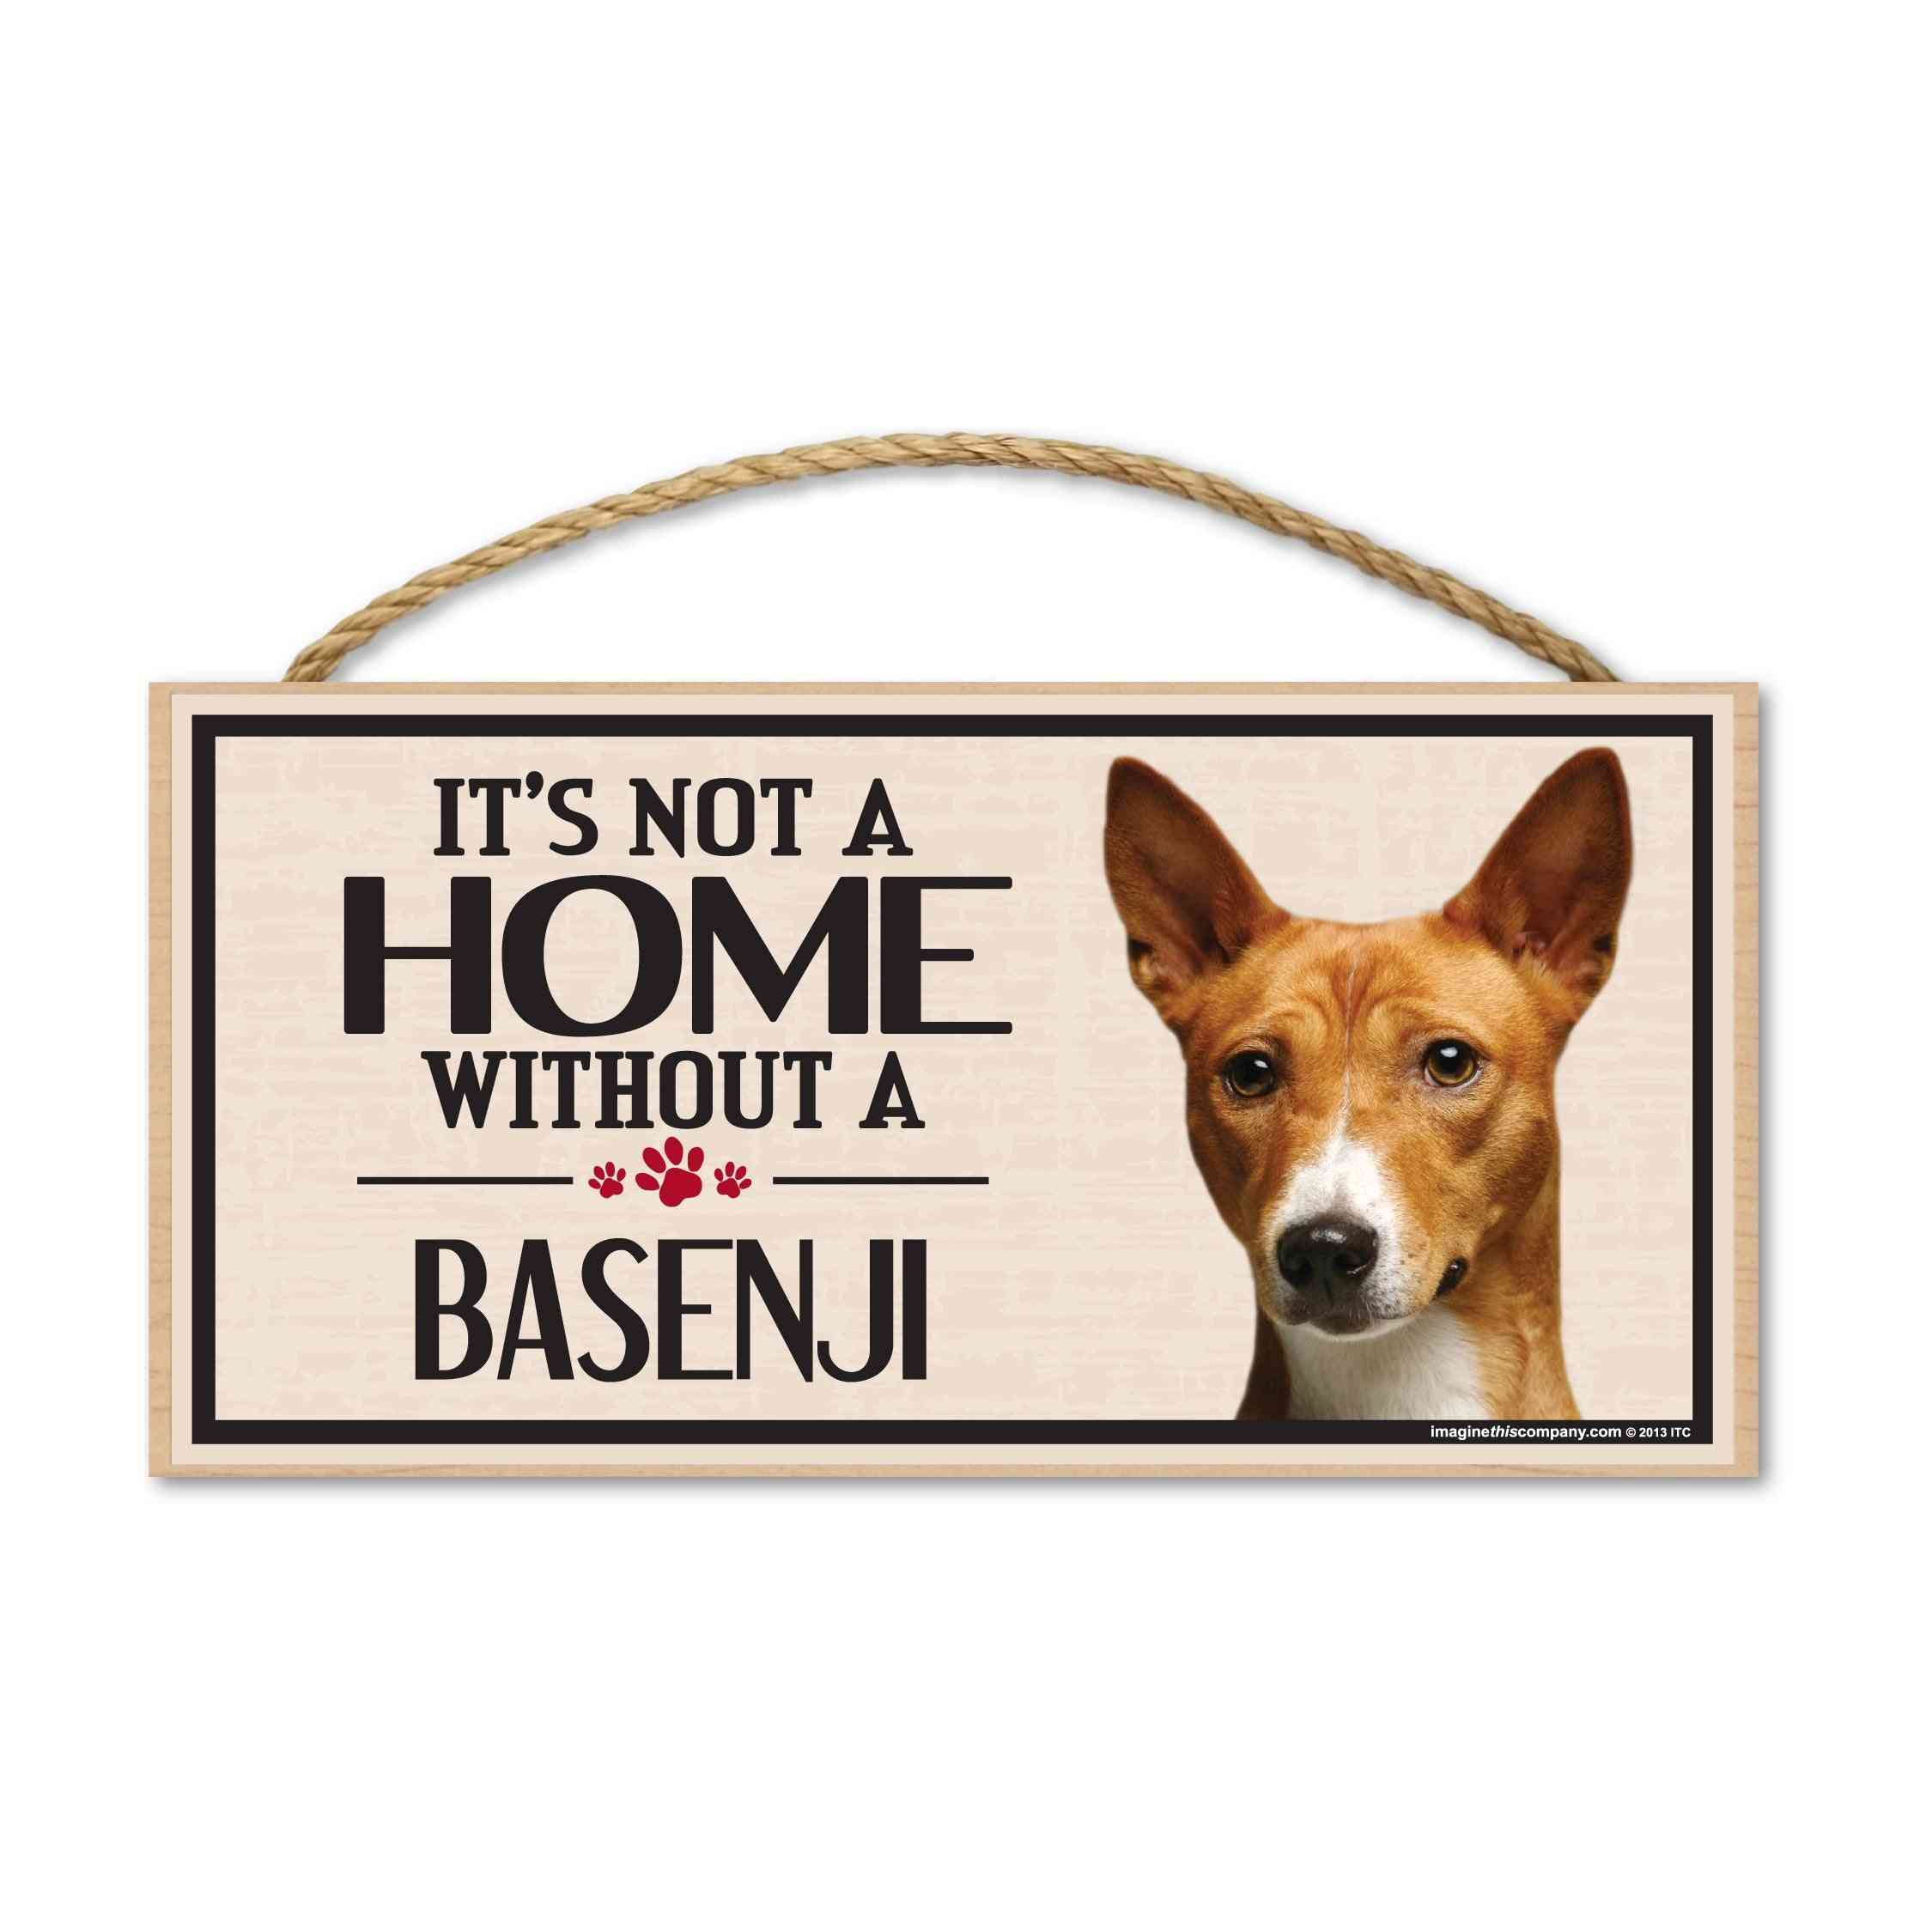 Sign, Wood, It's Not A Home Without A Basenji, 10